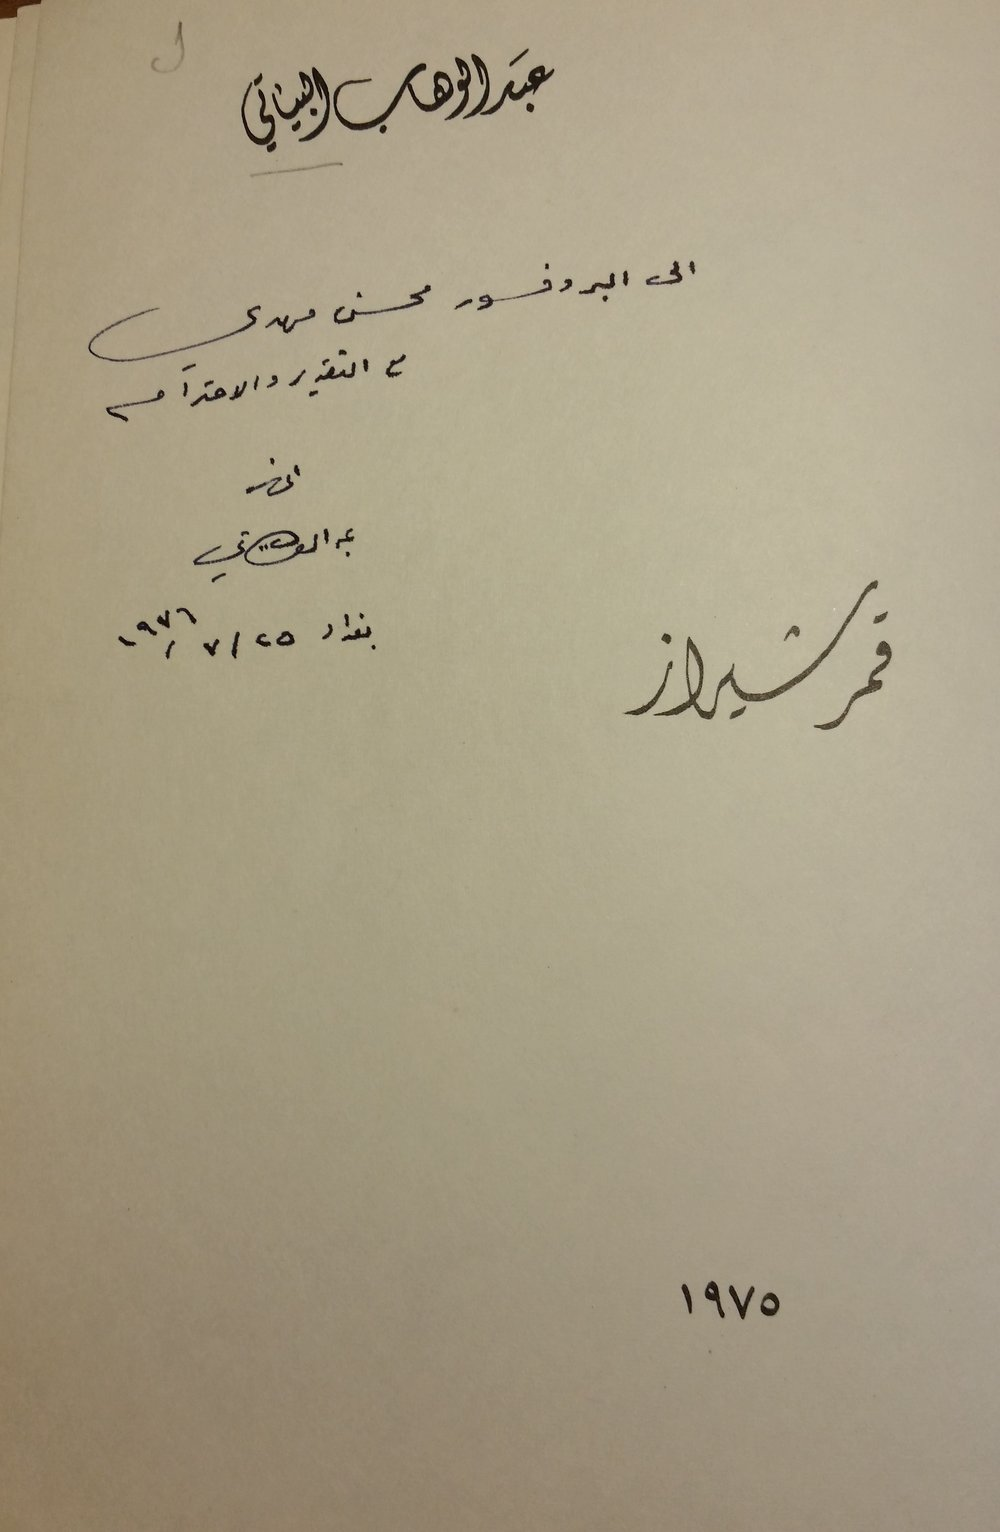 With a dedication to Professor Muḥsin Mahdī (d. 2007) from the author (ʿAbd al-Wahhāb al-Bayātī), dated 7/25/76.  This edition is held at Brown's Rockefeller Library.